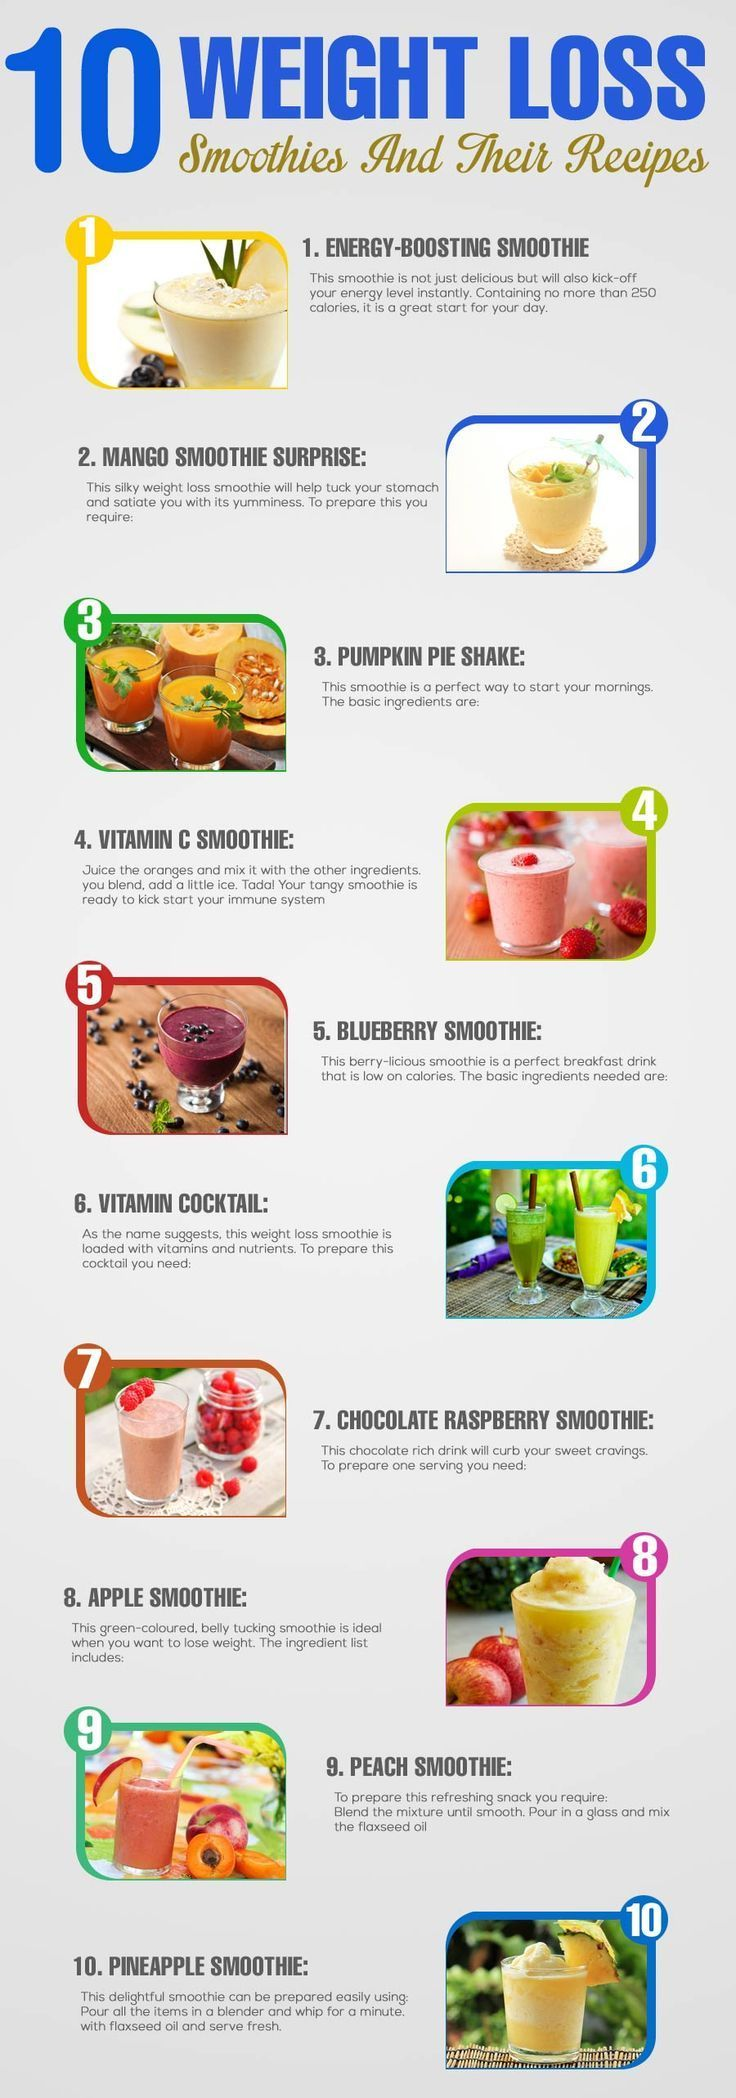 How To Make Healthy Smoothies At Home Lose Weight 25 Green Smoothie Recipes For Loss I Tried Pick The Healthiest Easiest And Most